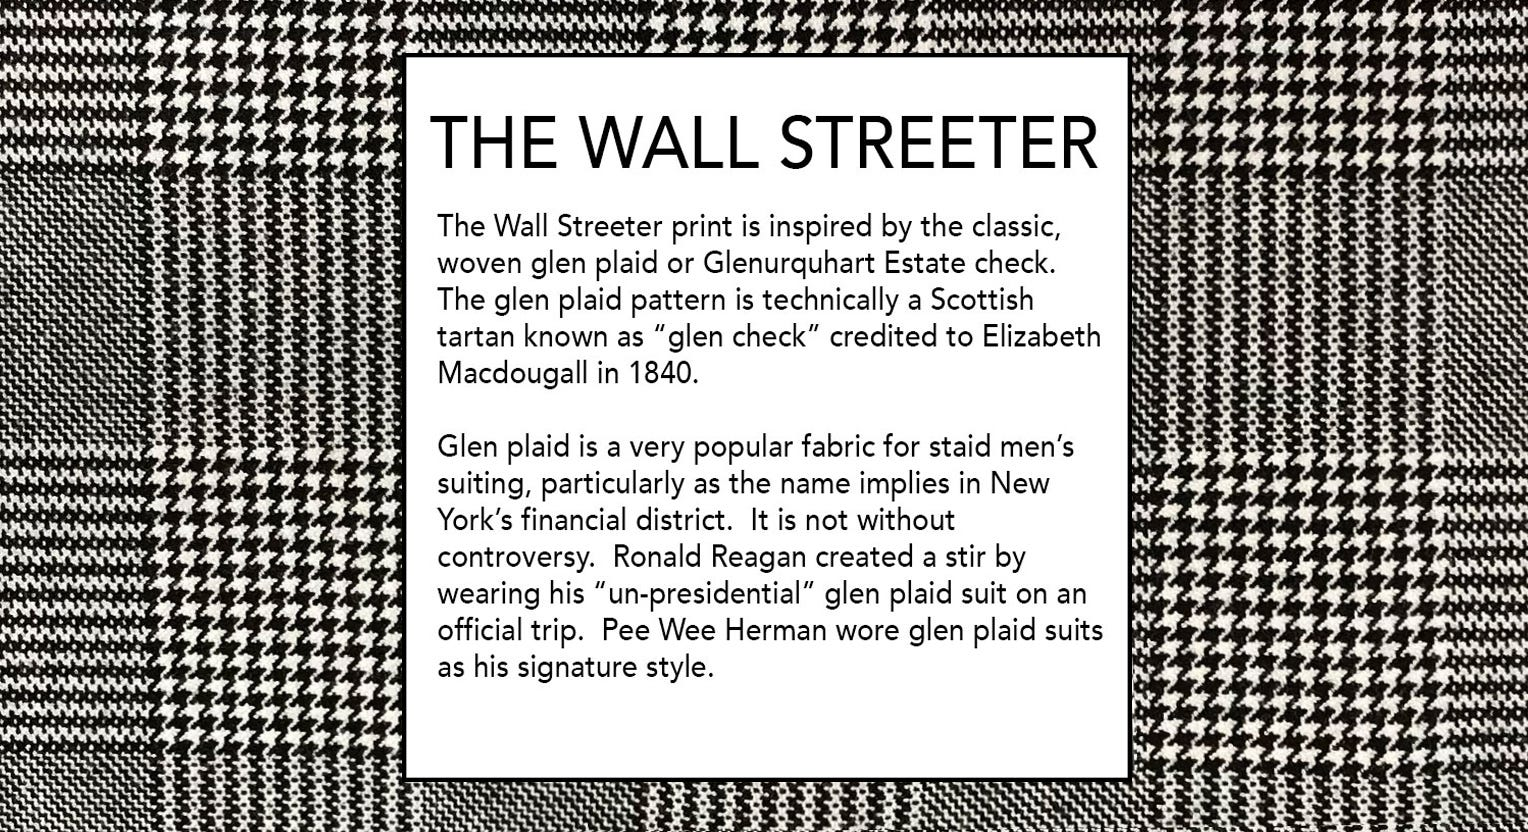 The Wall Streeter